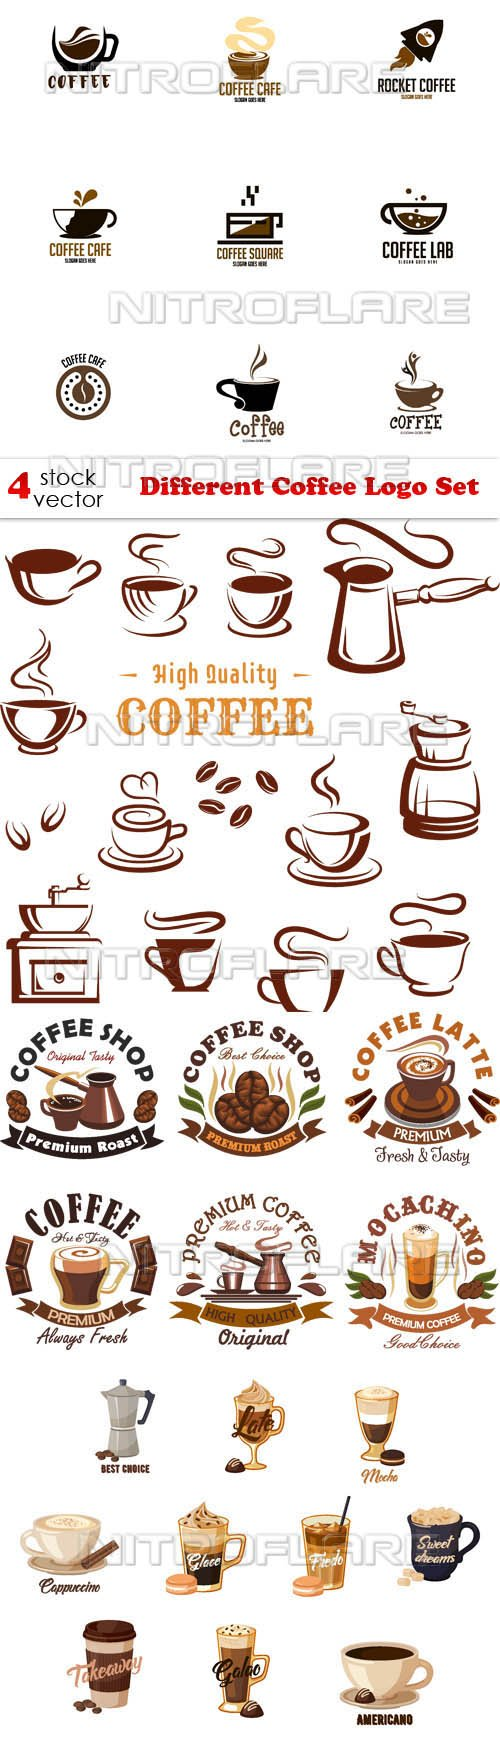 Vectors - Different Coffee Logo Set